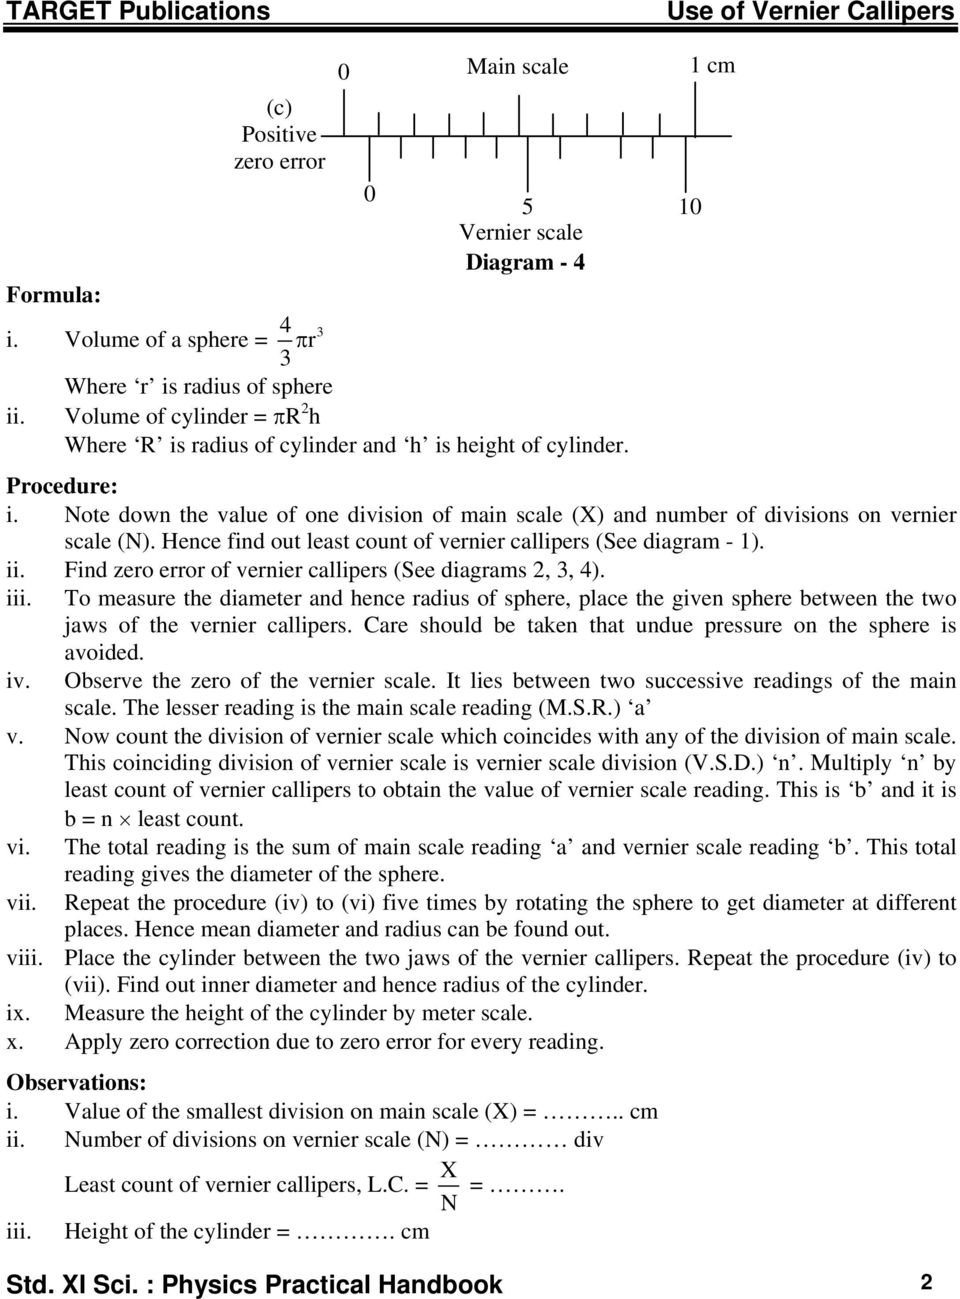 Std Xi Science Physics Practical Handbook Pdf Vernier Caliper Diagram Note Down The Value Of One Division Main Scale X And Number 10 Use Callipers